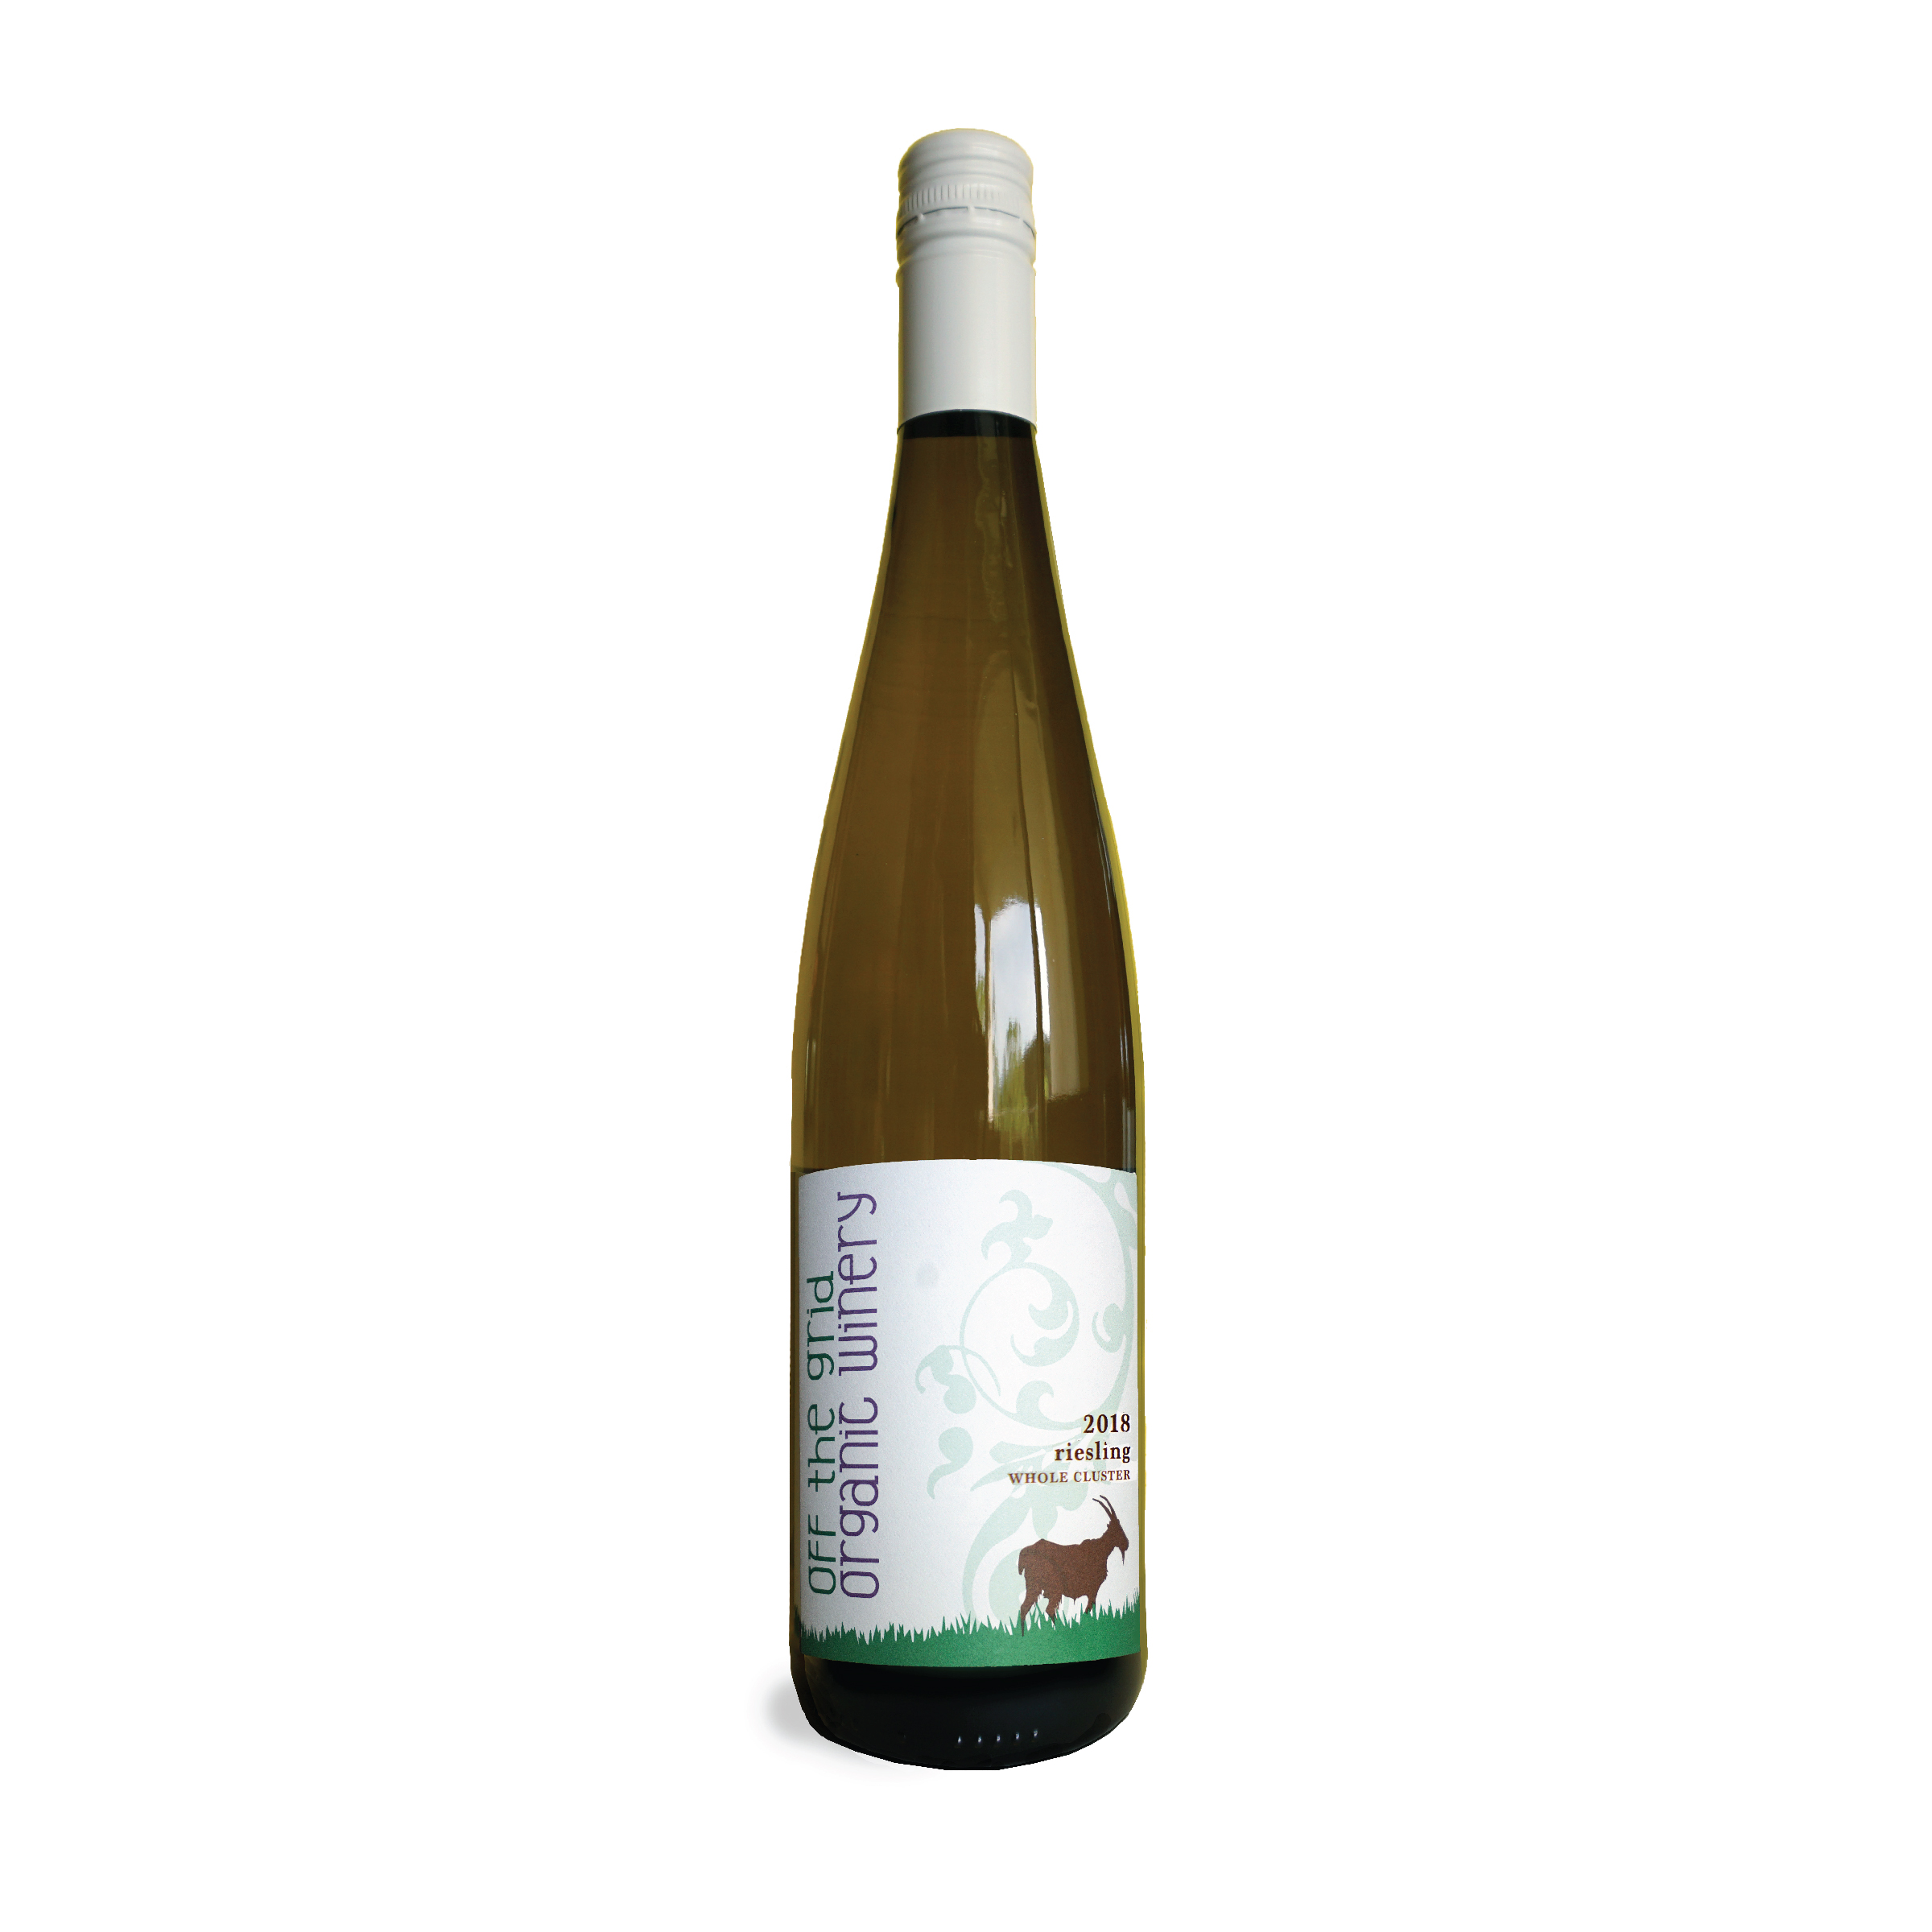 2018 Whole Cluster Riesling - $26.00This wine delivers full peaches, apricots, and honey on both the nose and the palate. It is incredibly juice and leaves you wanting more. Pair this wine with hot summer days, curried dishes, and BBQ'd peach salad.